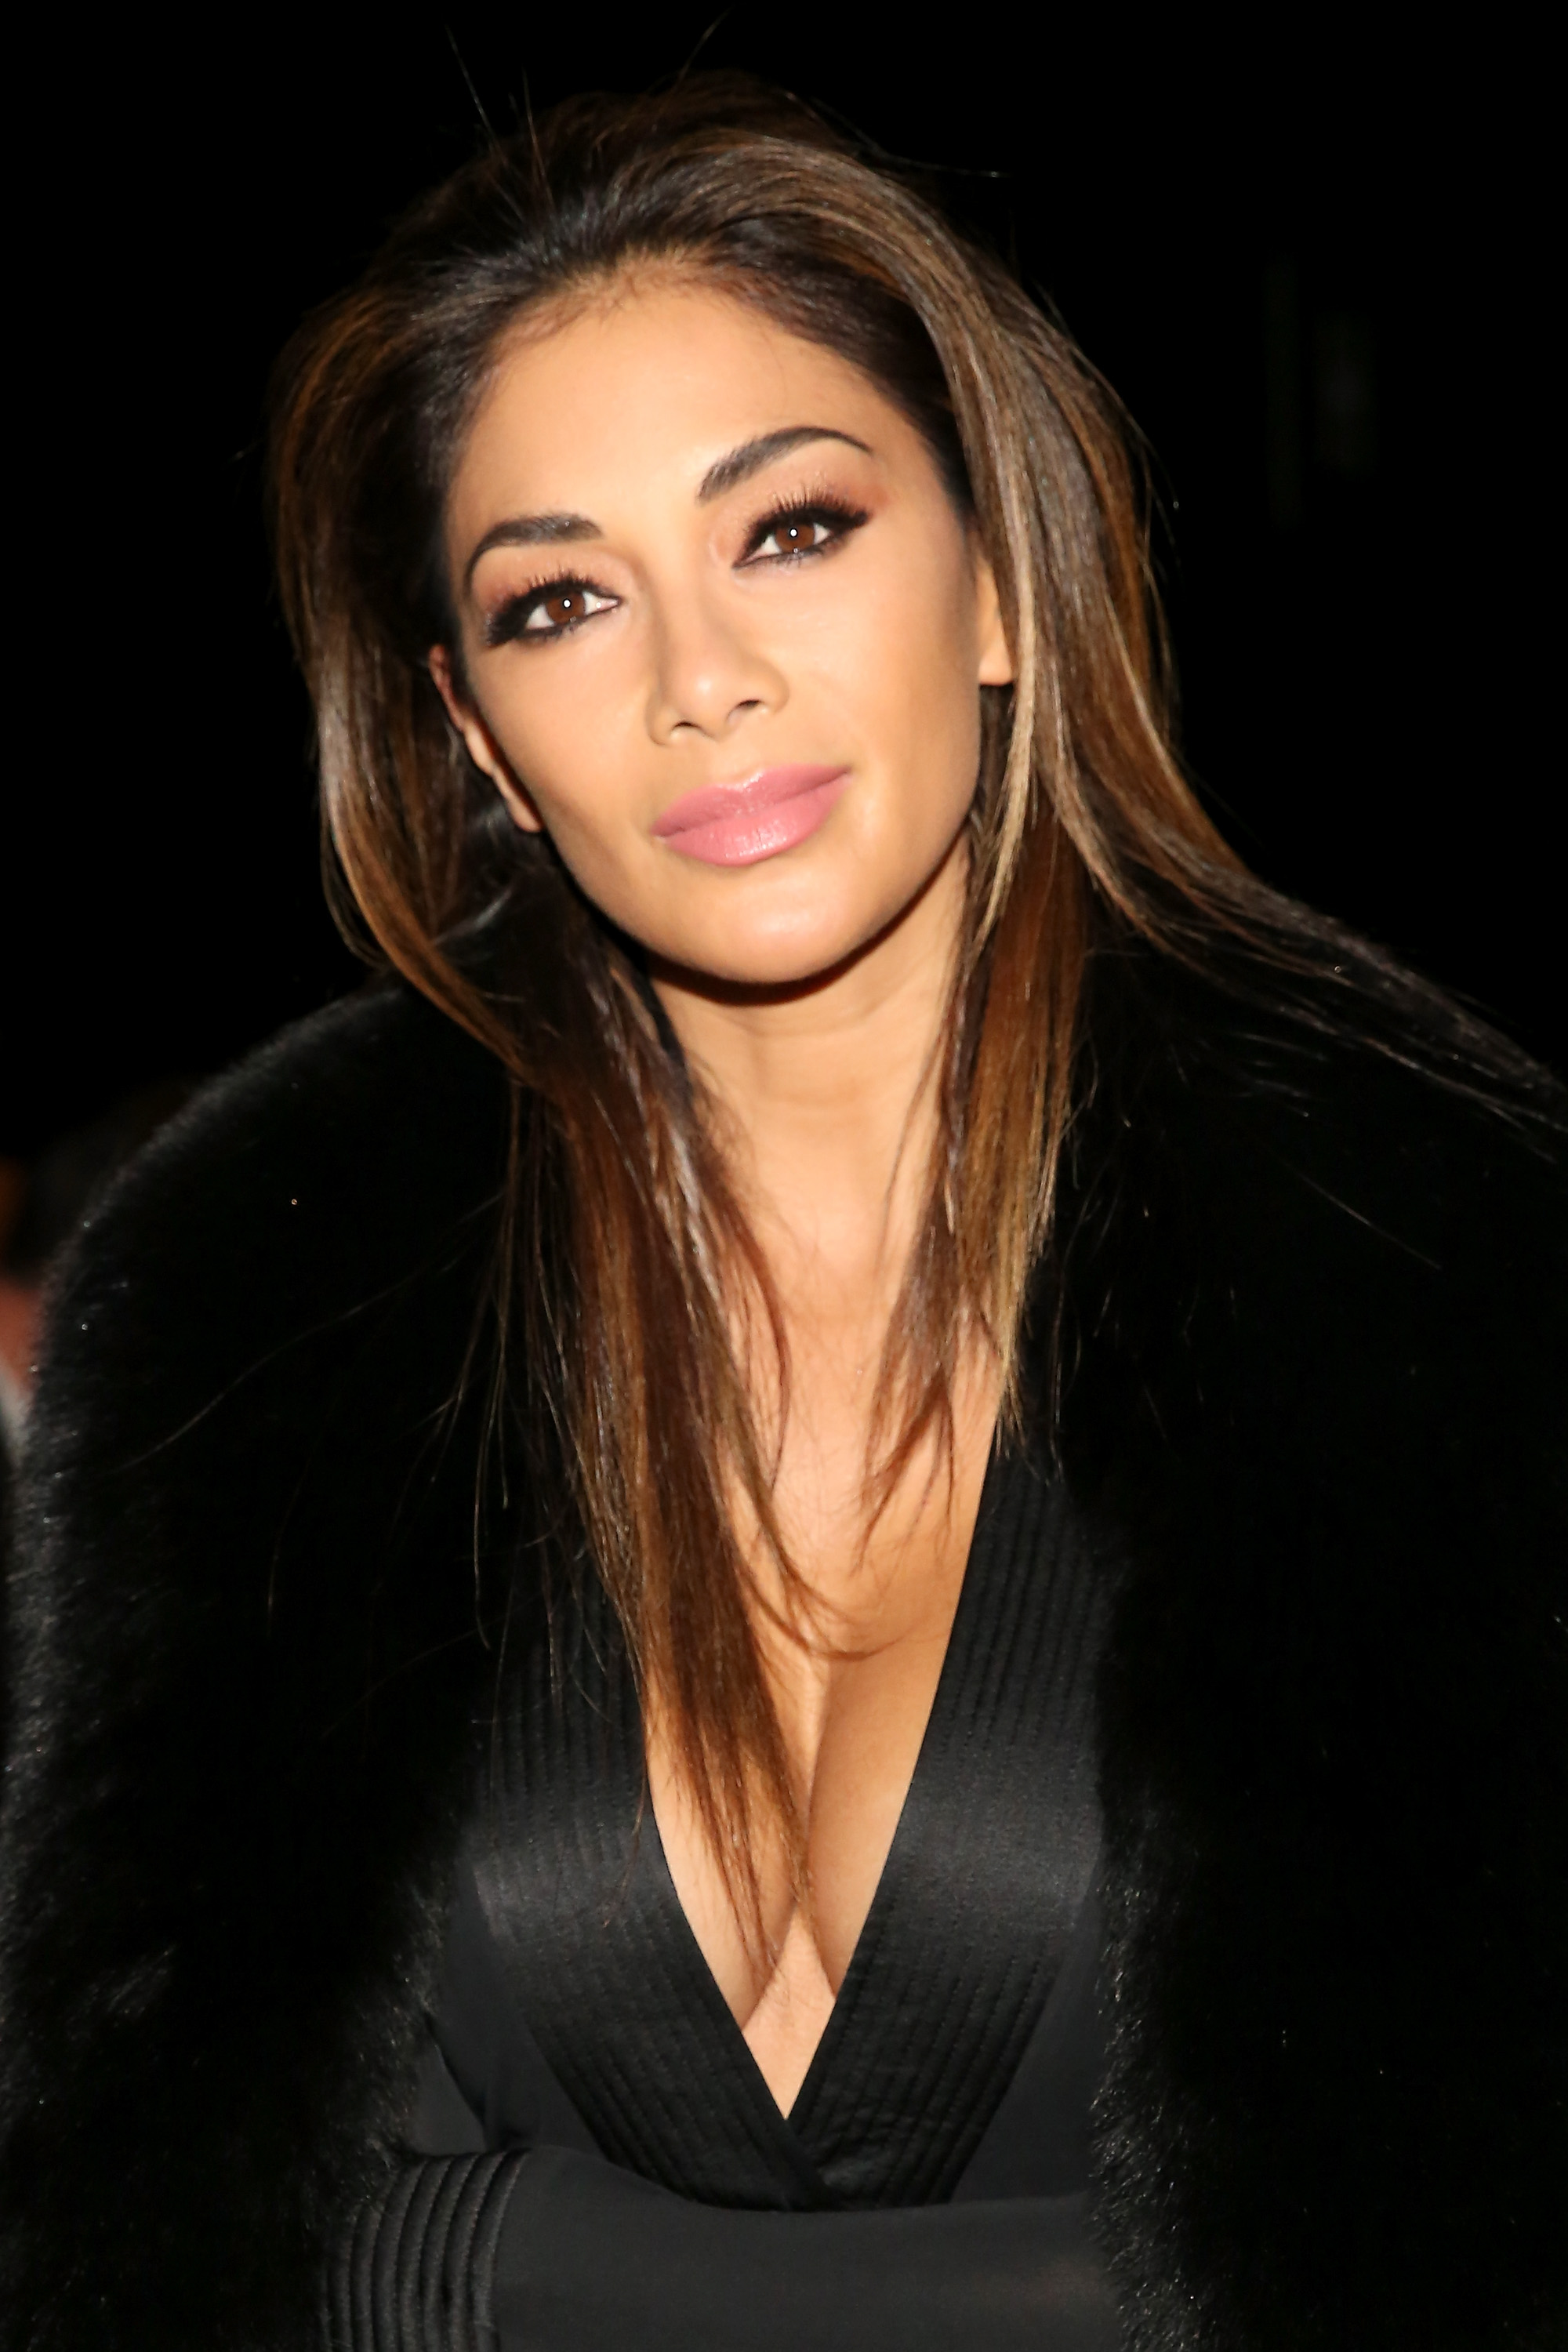 NEW YORK, NY - FEBRUARY 15: Nicole Scherzinger attends the Thomas Wylde Fall 2016 fashion show during New York Fashion Week: The Shows at The Dock, Skylight at Moynihan Station on February 15, 2016 in New York City. (Photo by Monica Schipper/Getty Images for NYFW: The Shows)